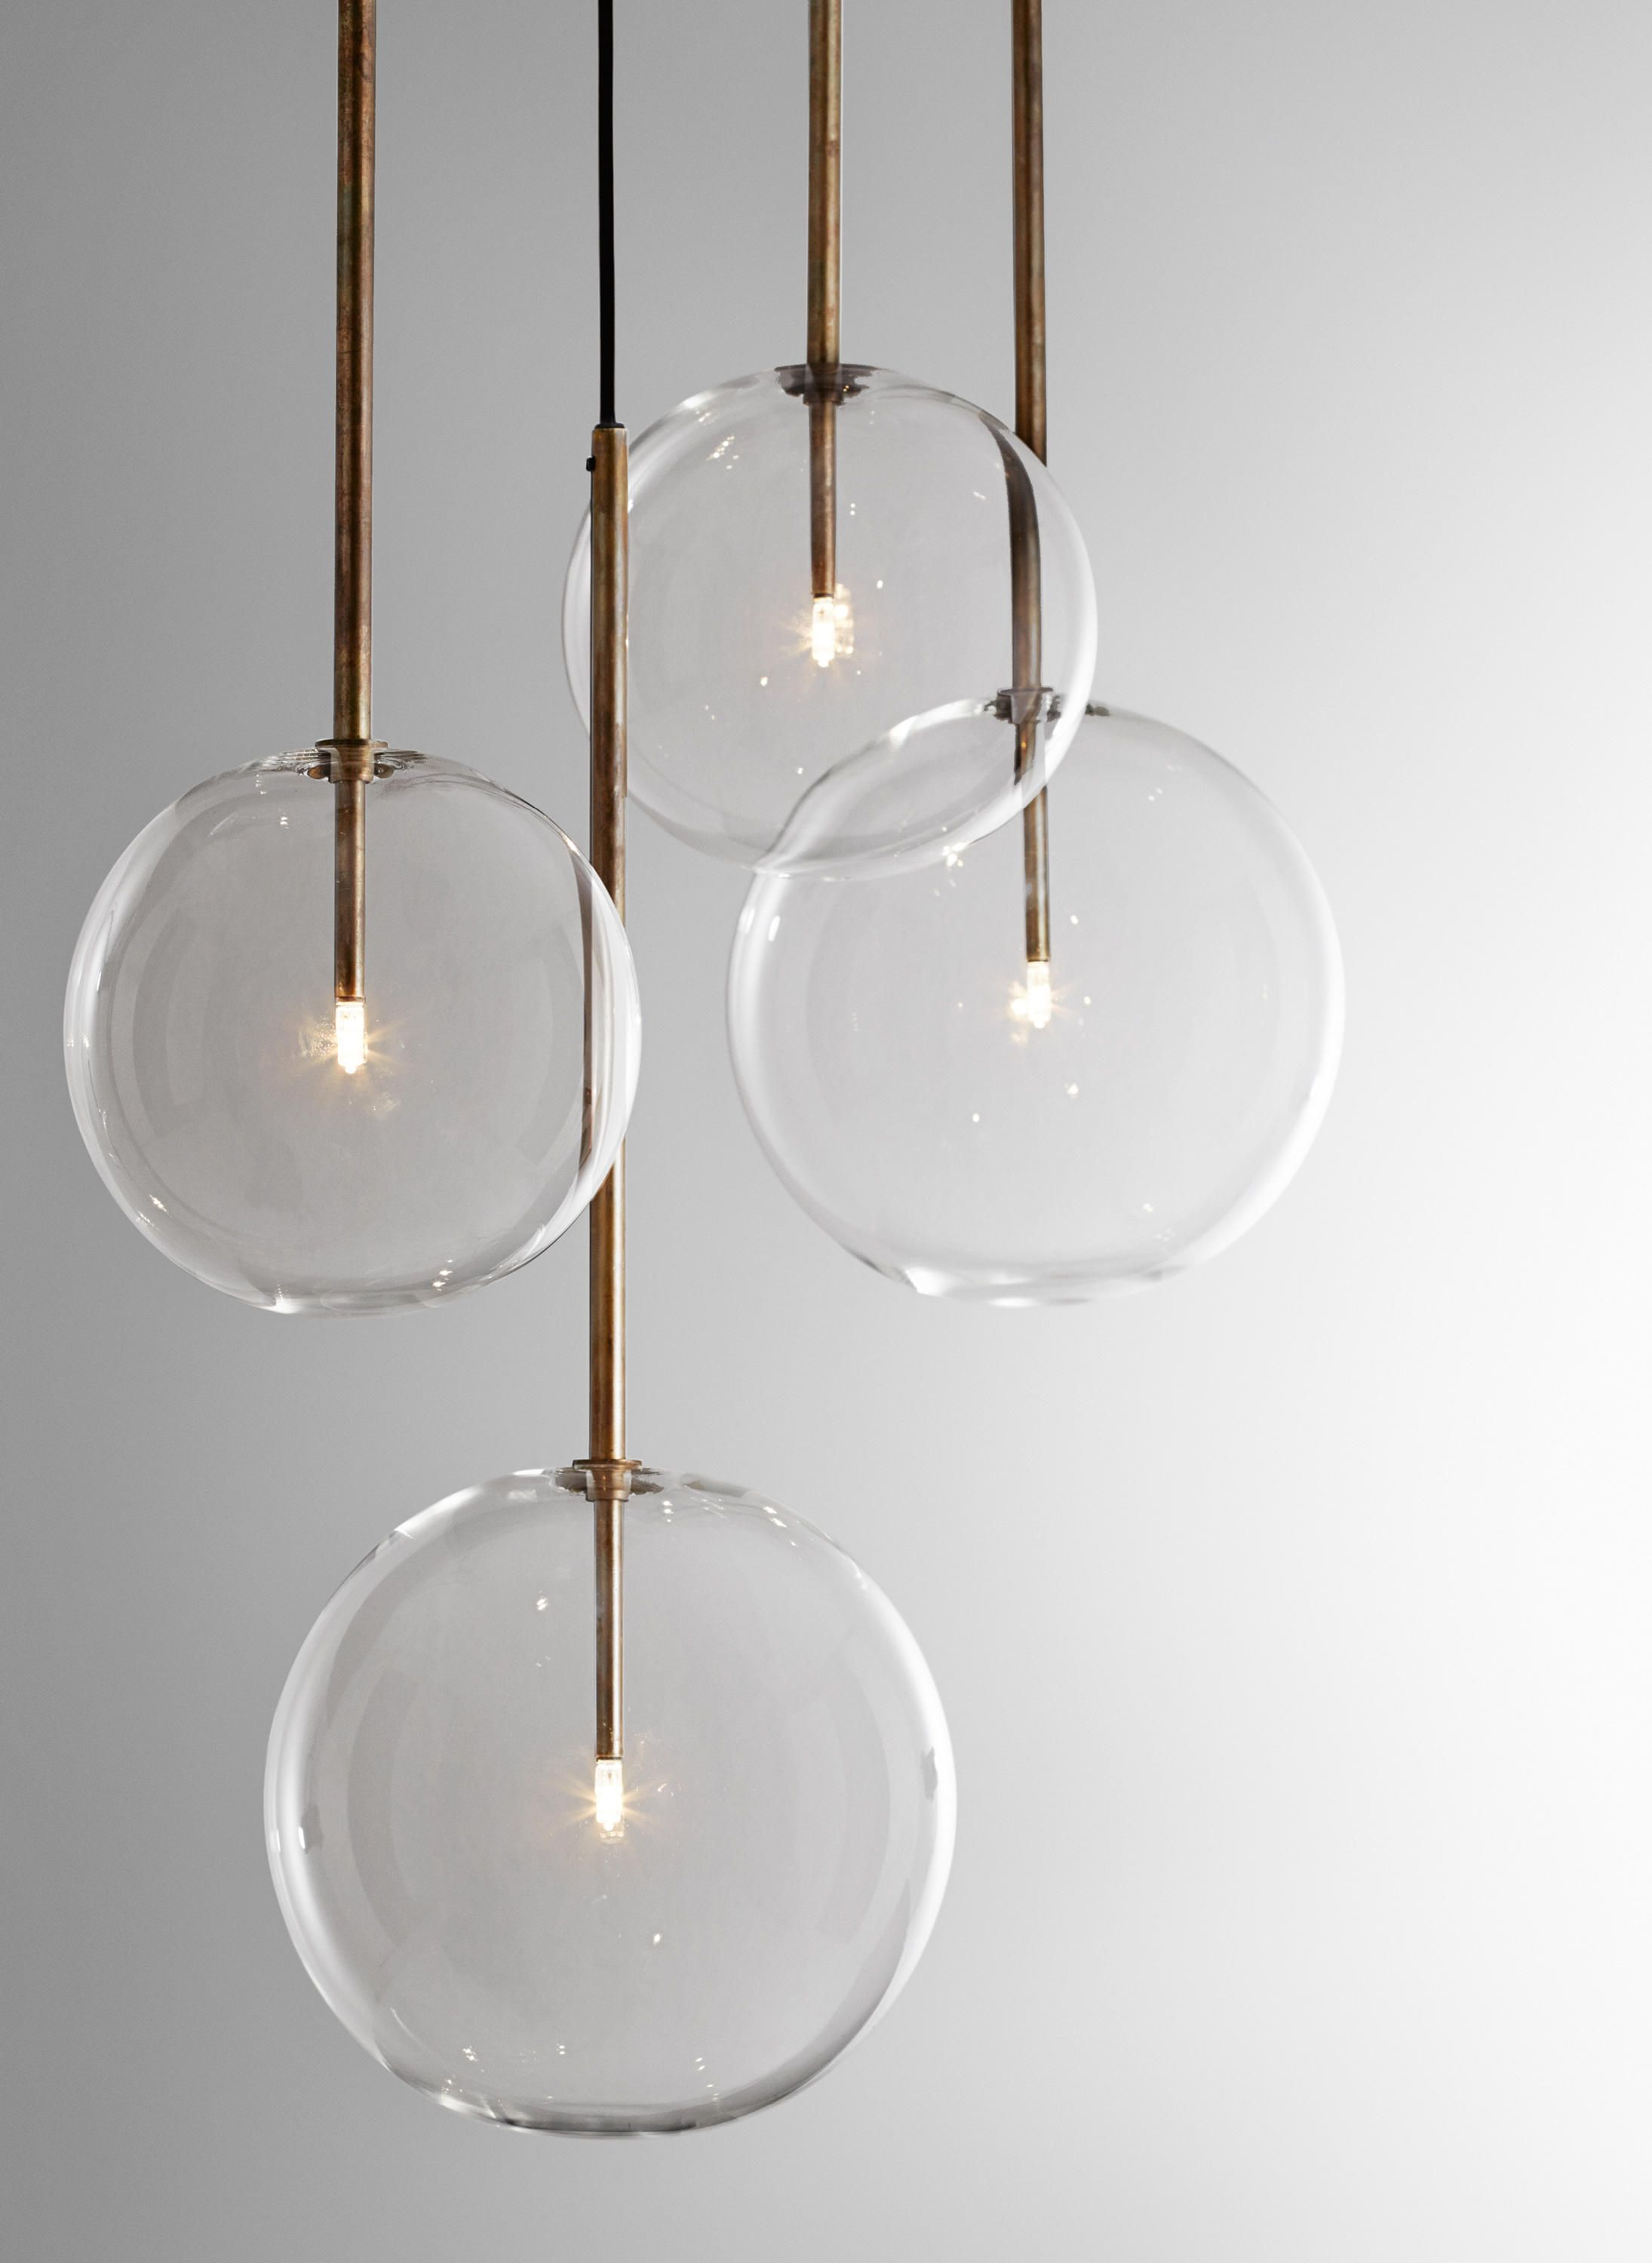 Hanging Lamp With Halogen Point Light 20 Watt Transparent Blown Glass Sphere Metal Parts In Hand Burni Lighting Design Lighting Inspiration Unique Lighting